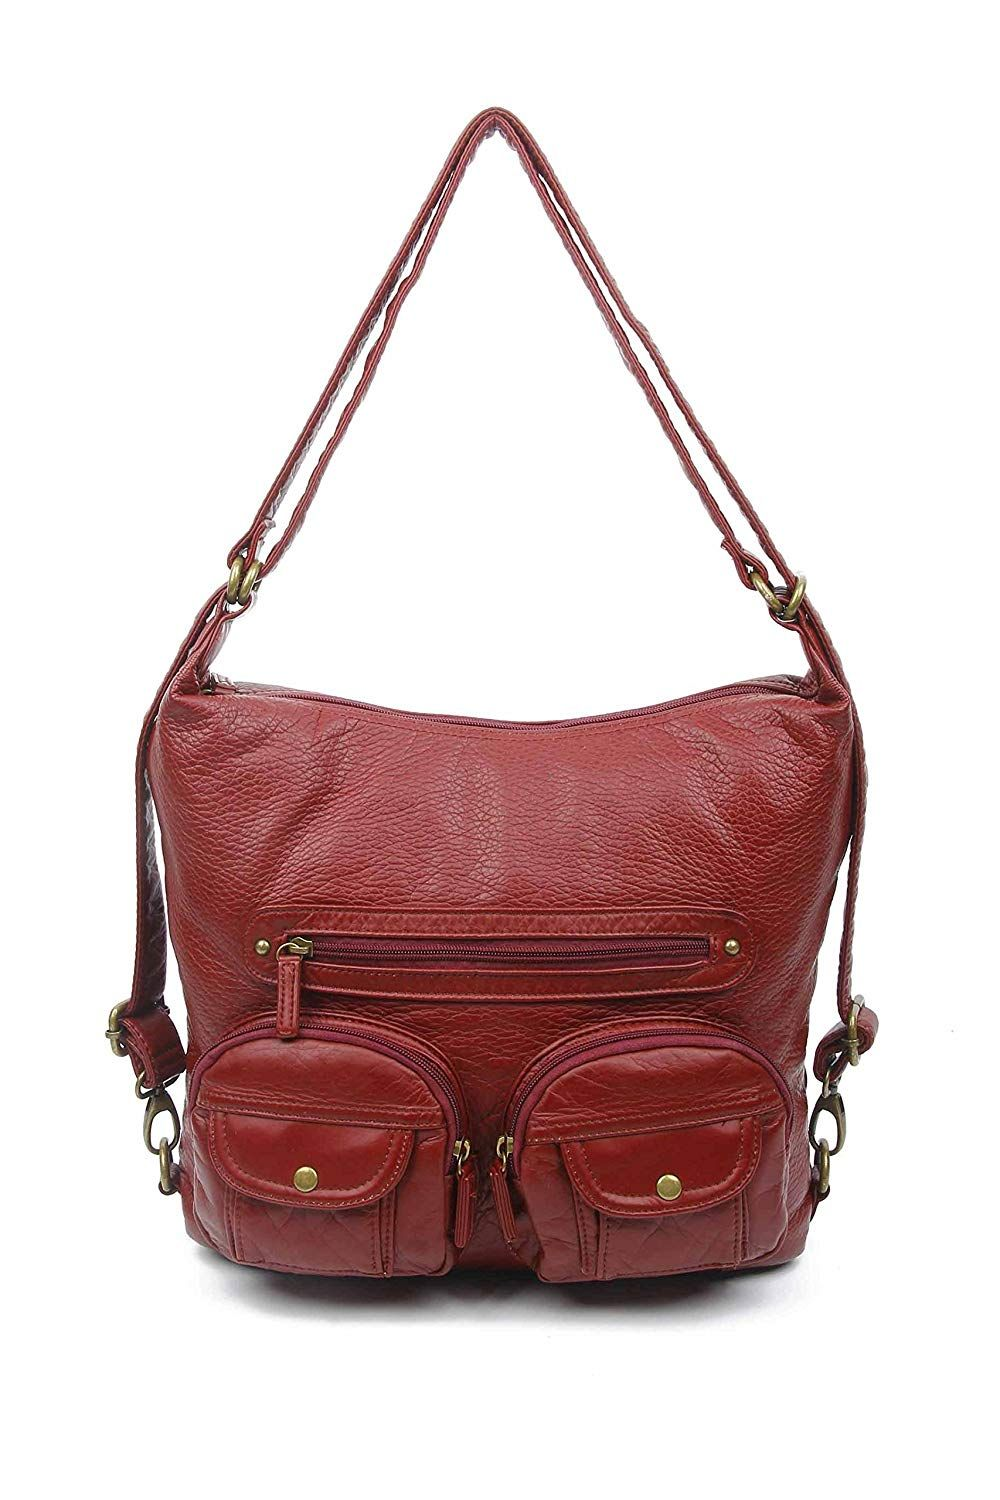 Both Backpack and Shoulder Bag in Soft Vegan Leather Convertible Purse